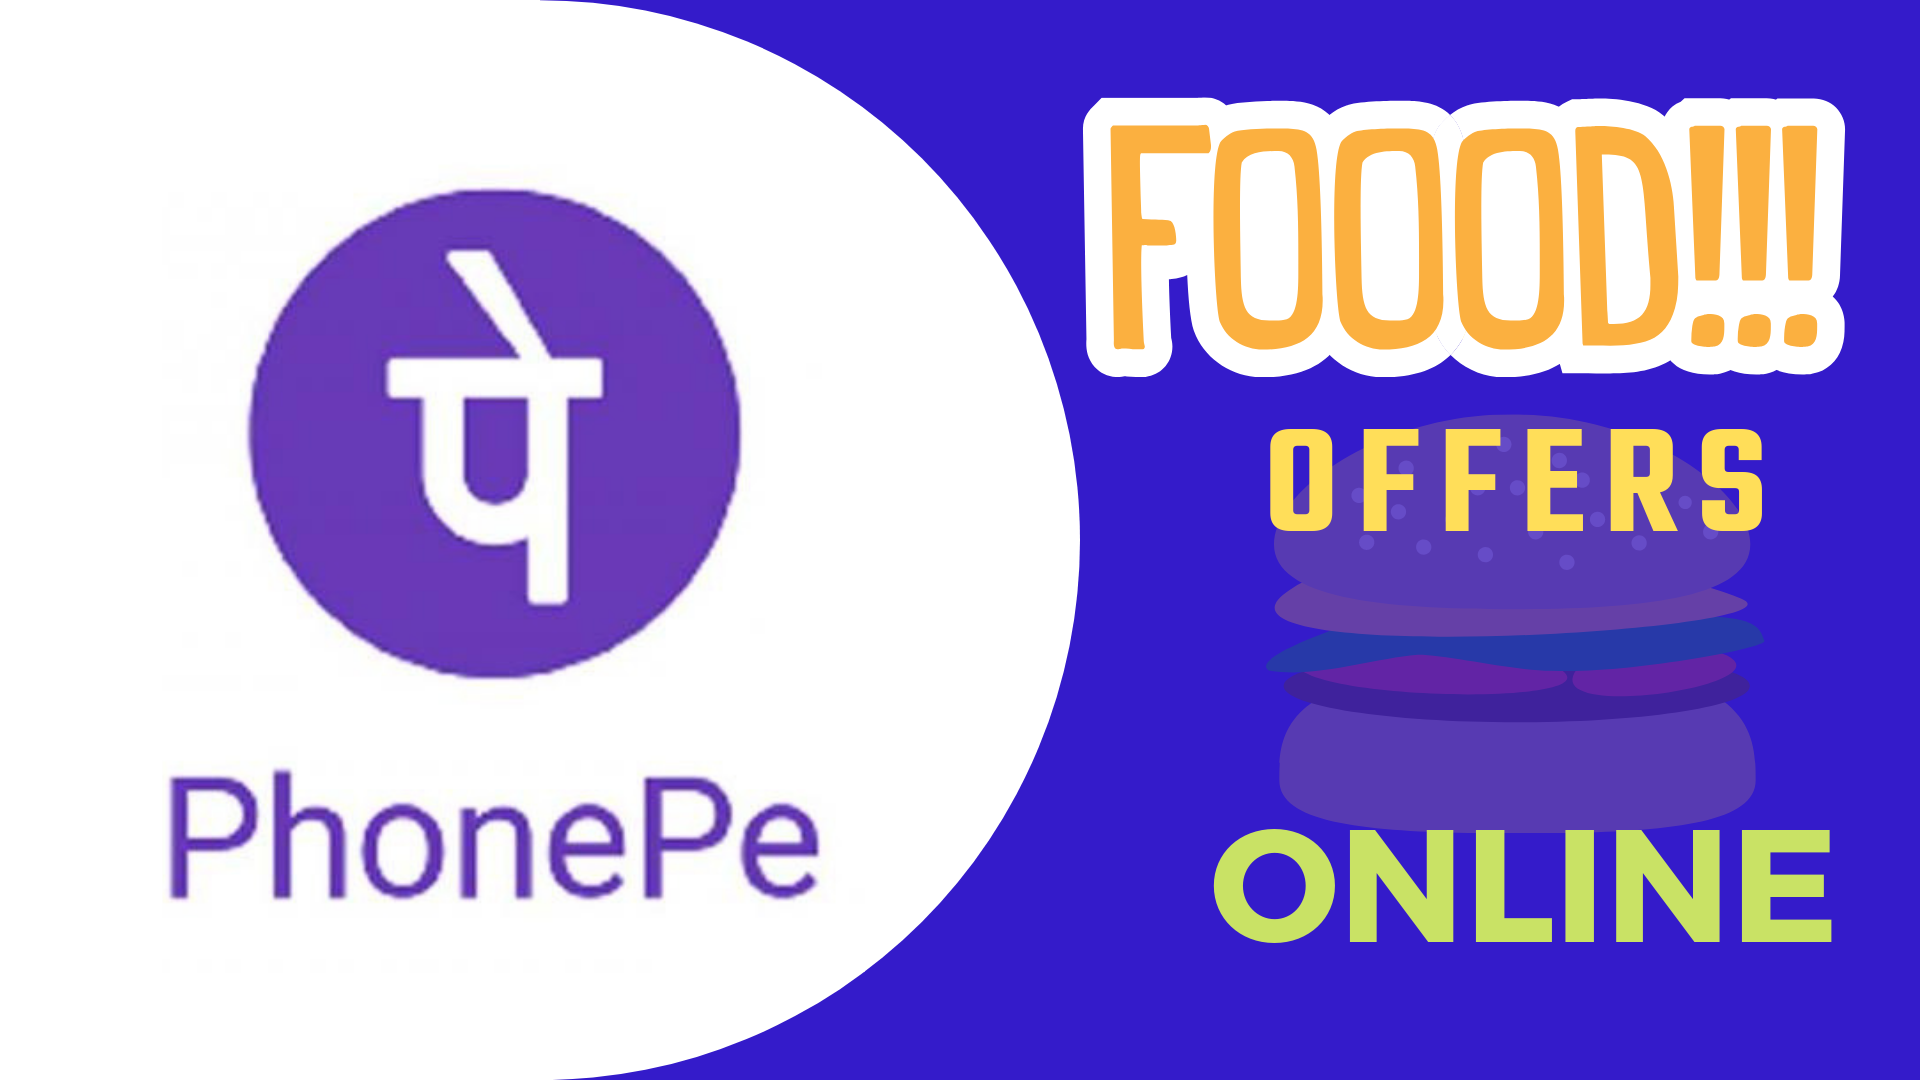 phonepe-food-offers-online